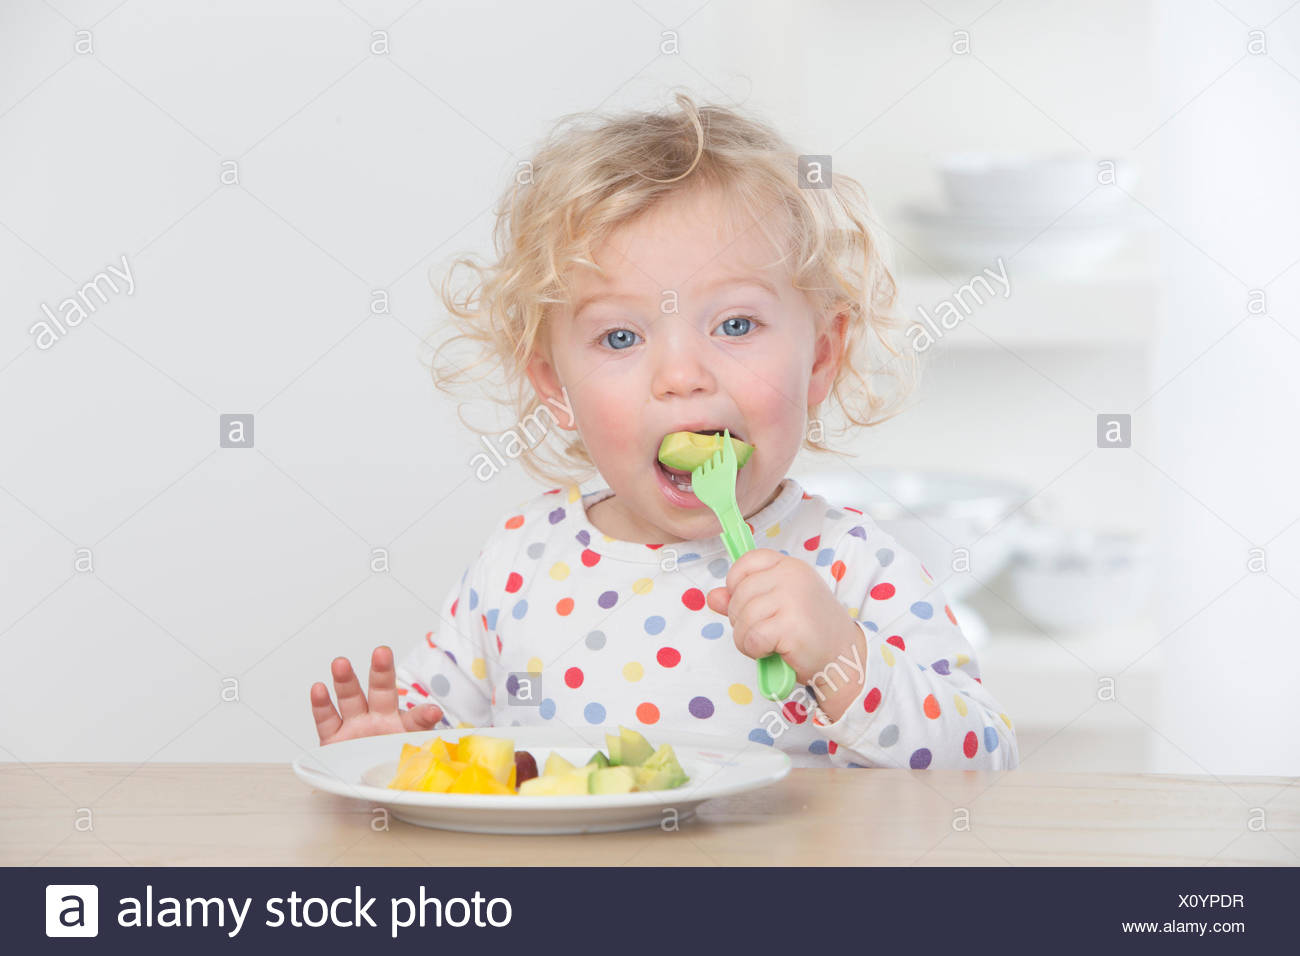 Baby eating fruit with fork - Stock Image